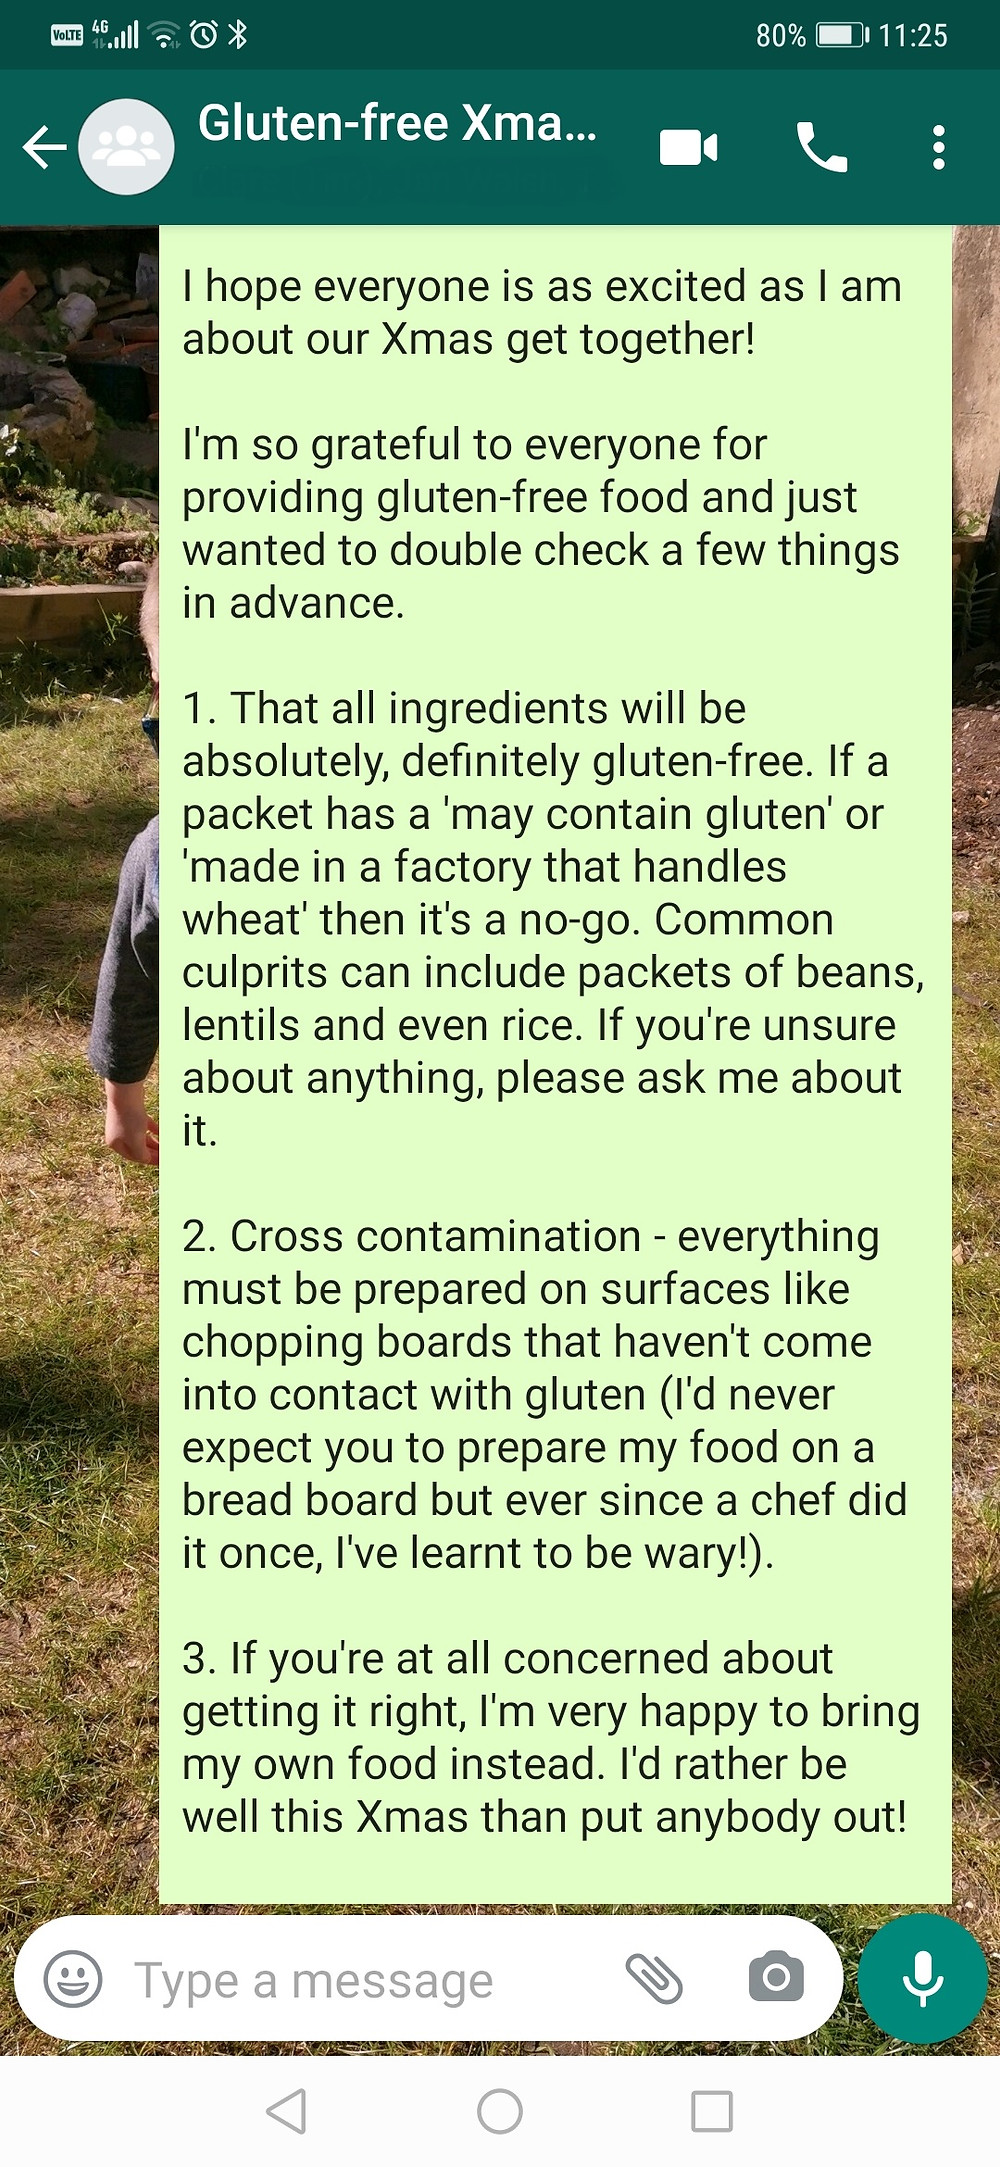 Gluten-free Xmas WhatsApp message